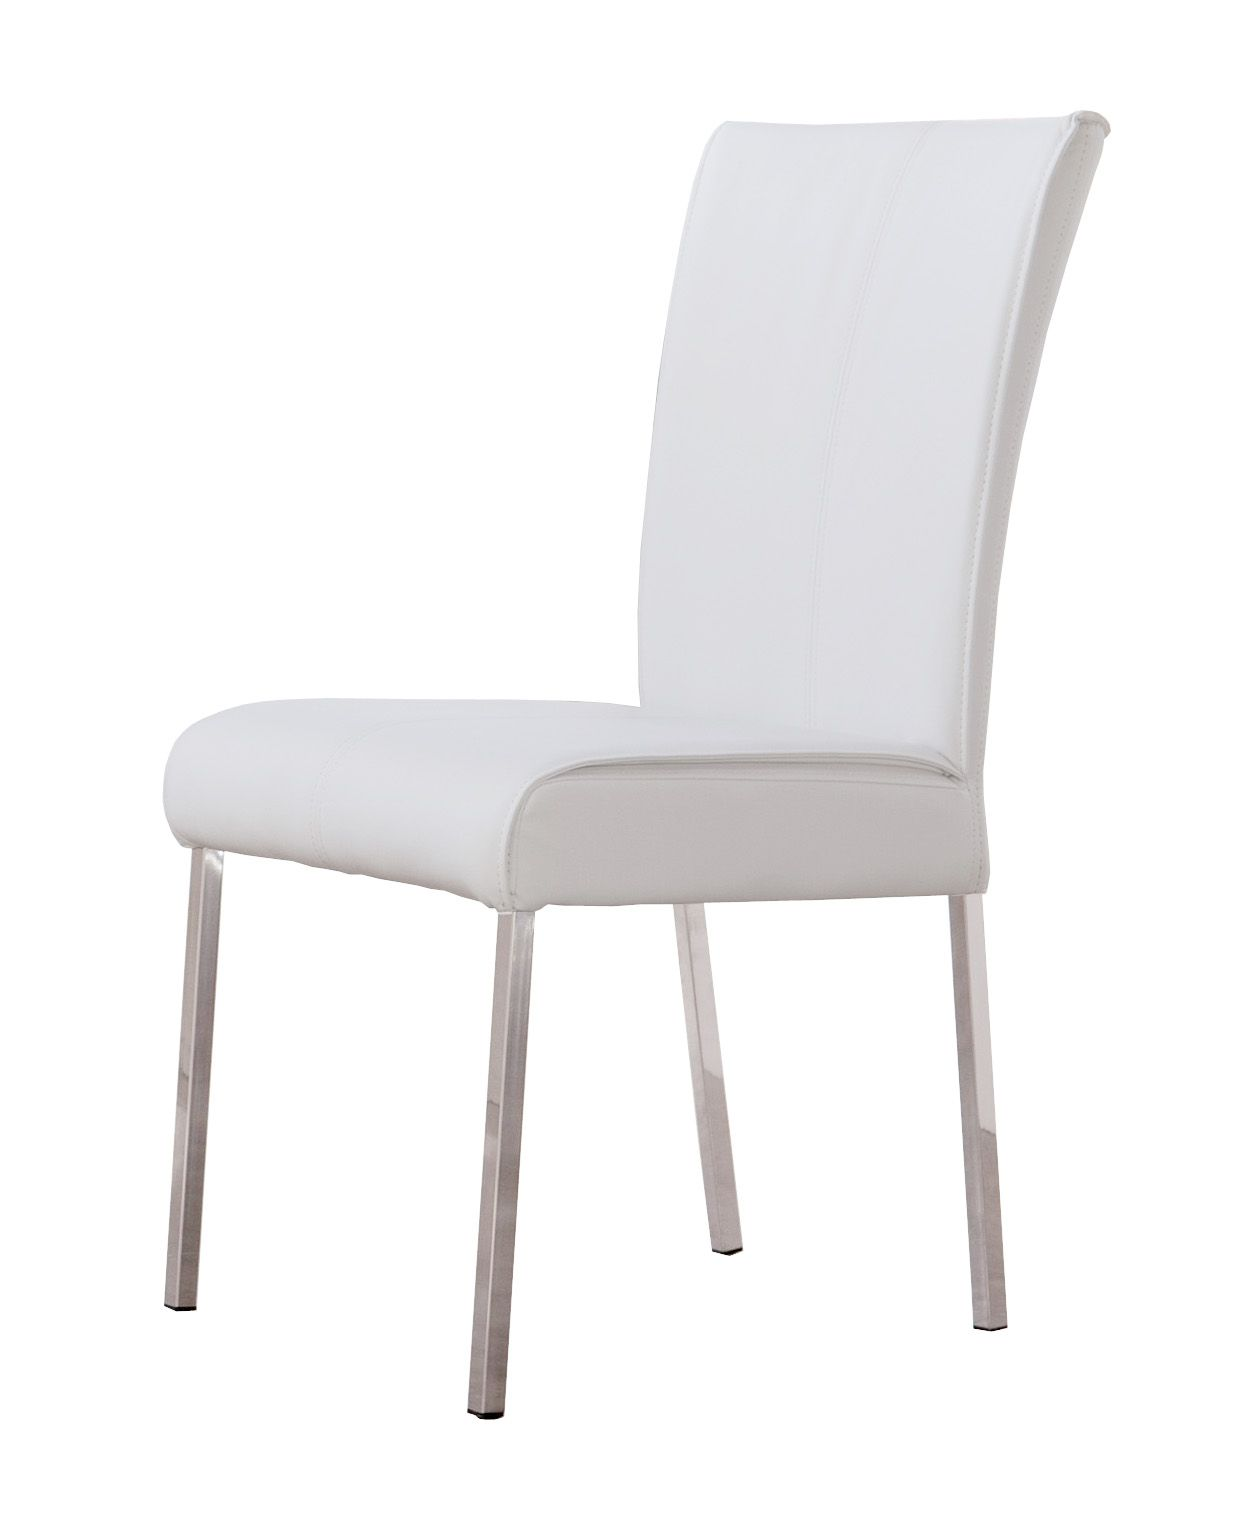 Dining Chairs With Stainless Steel Legs On Chair Dance Pu Kd In Polished Dc 7328